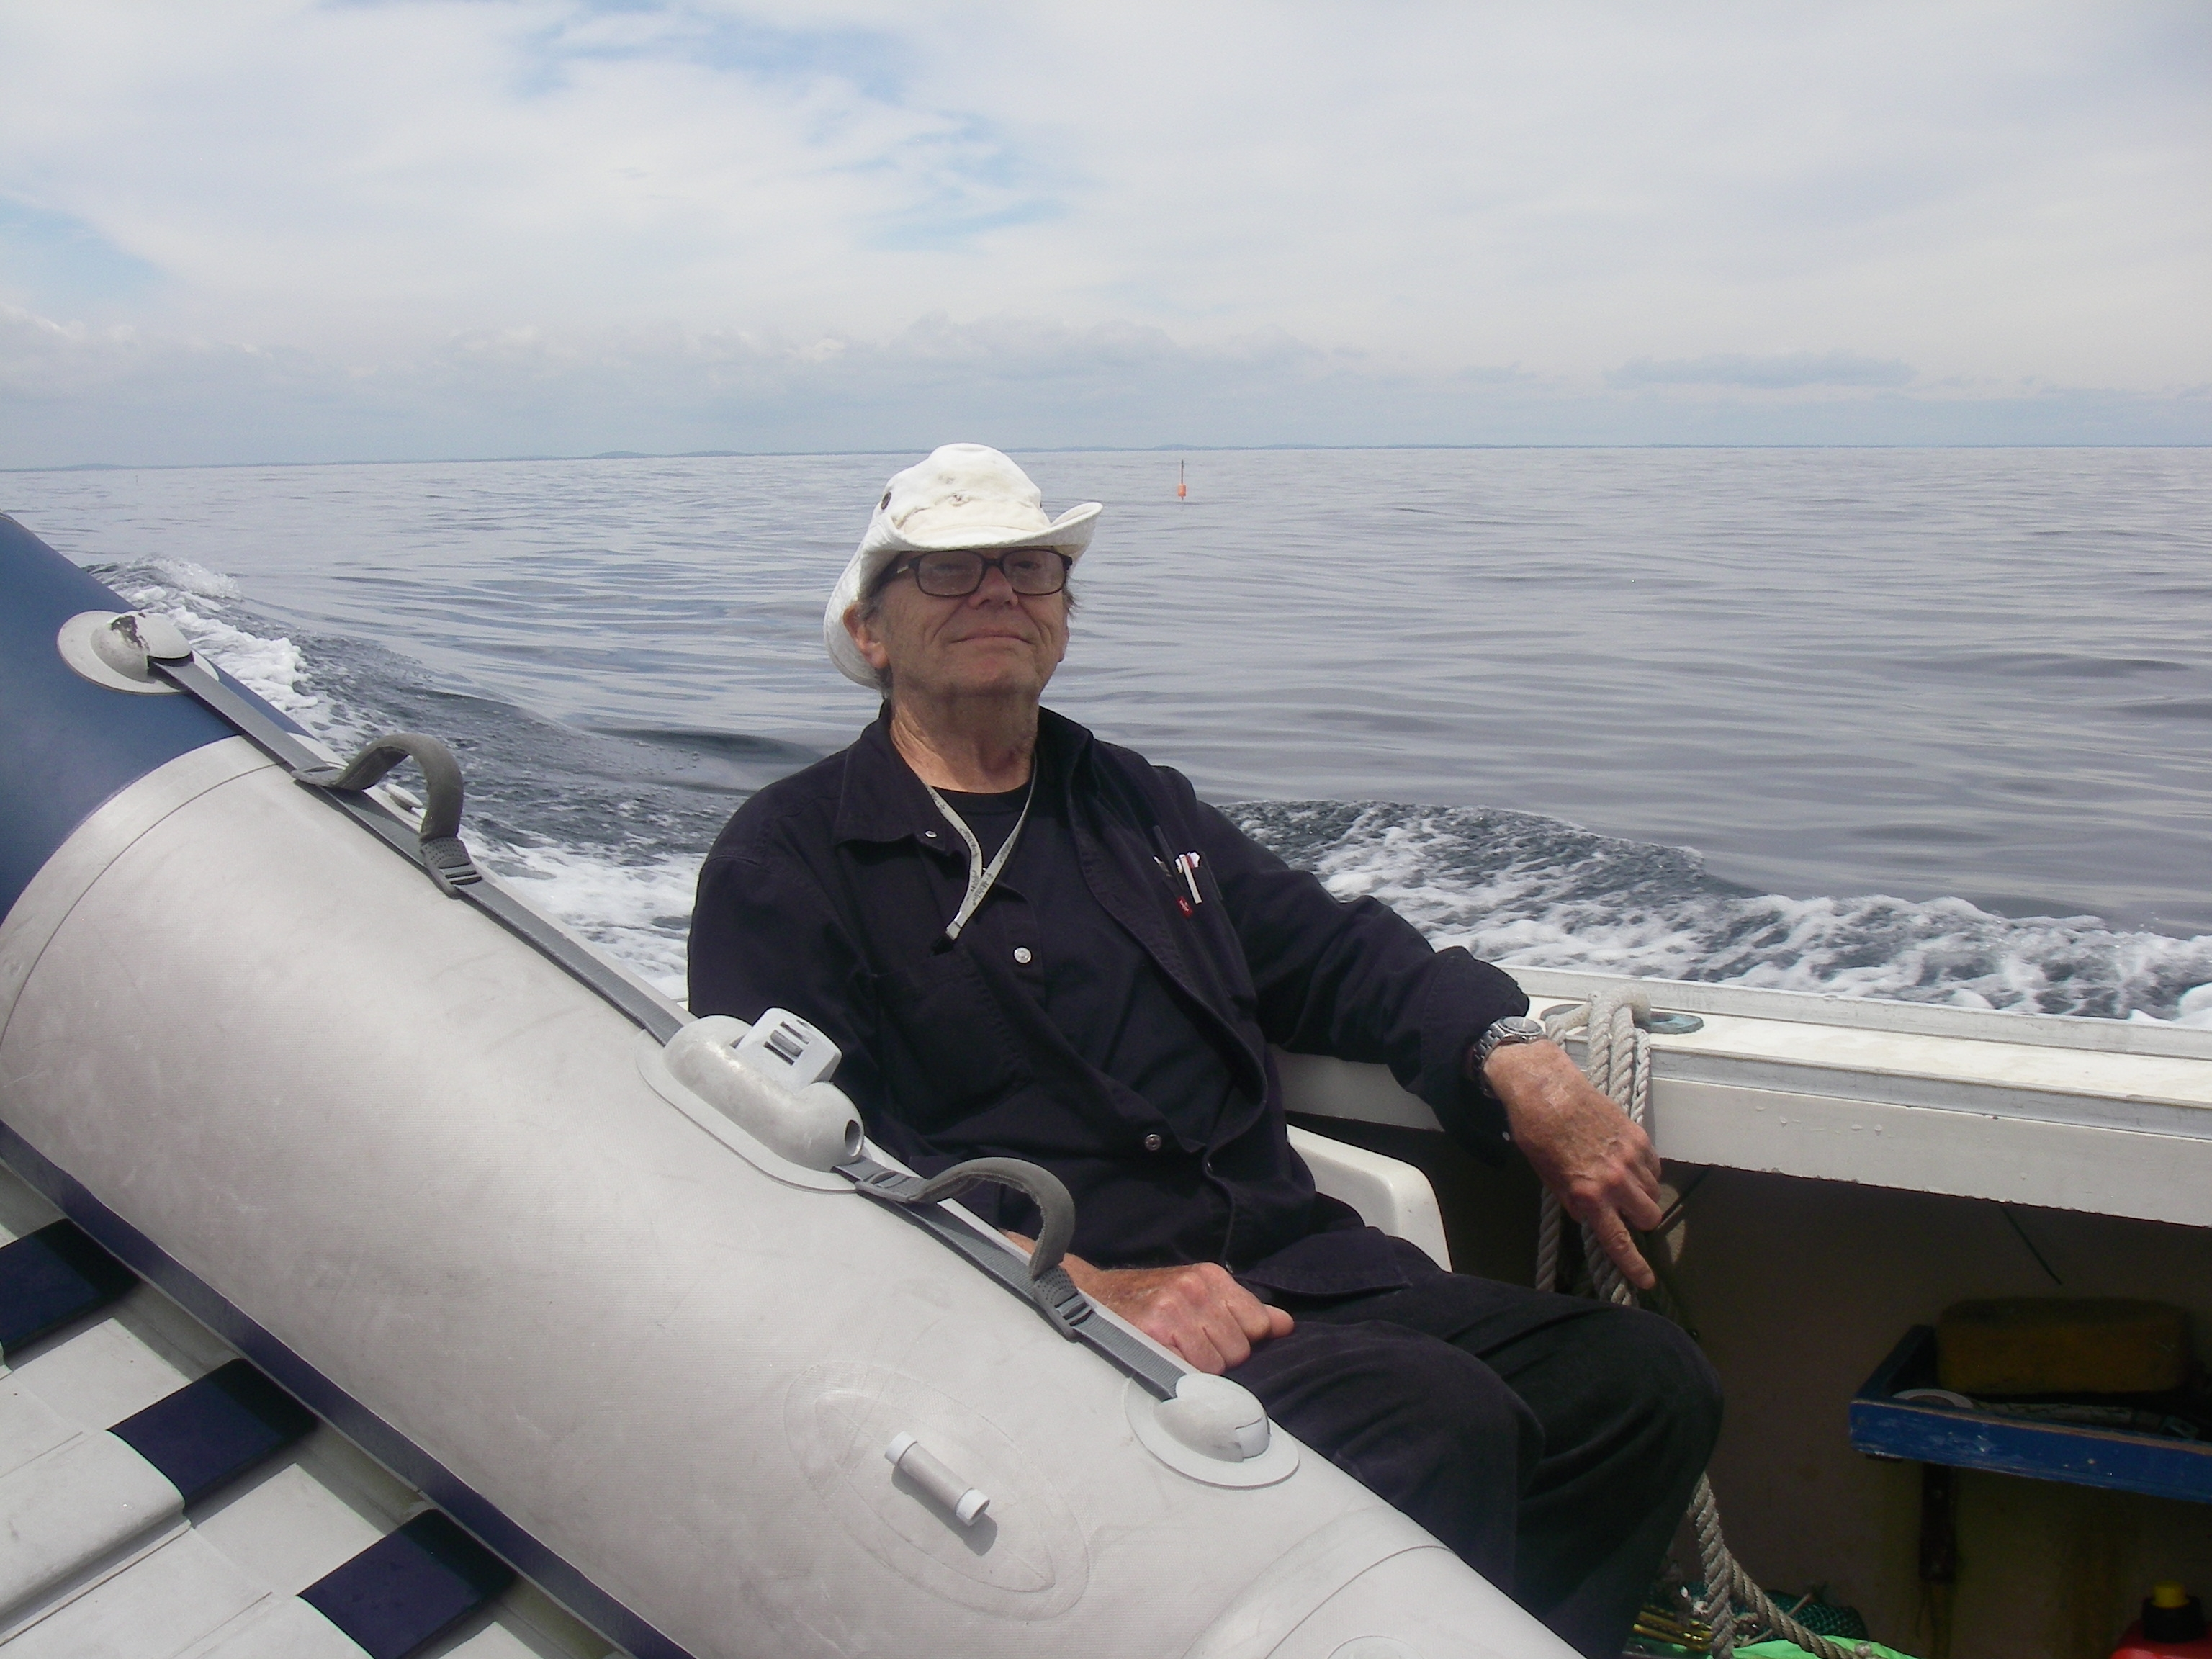 Flat, Calm Sea with Captain Fred on Duty